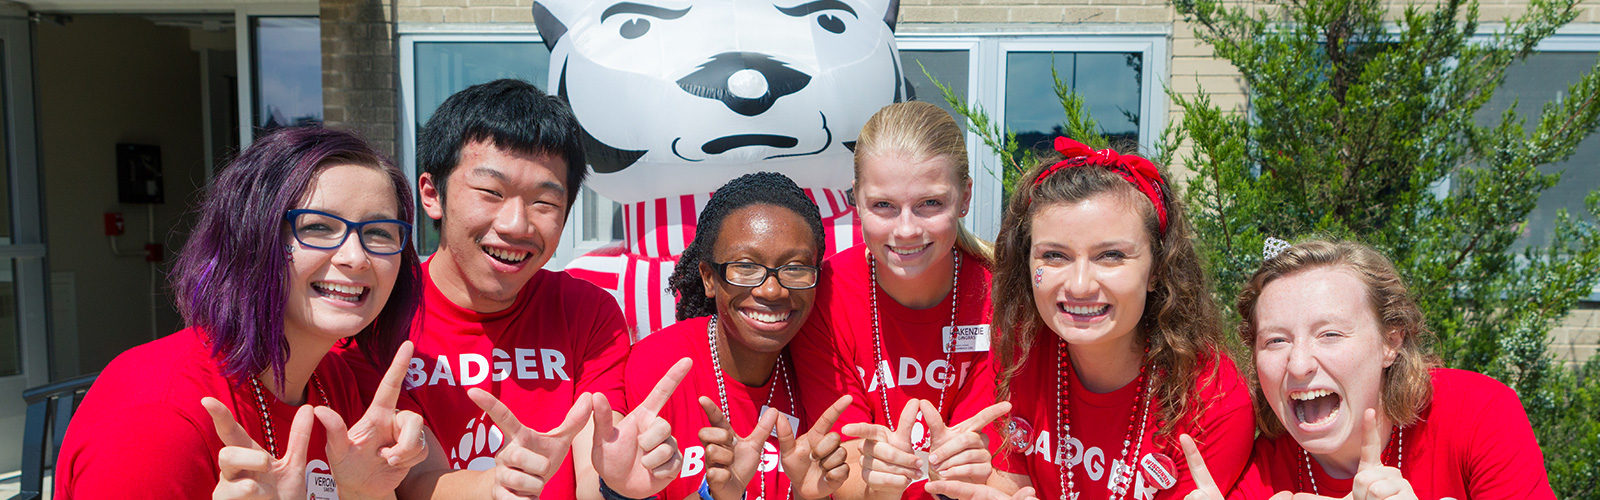 Badger Buddies helping with fall move-in